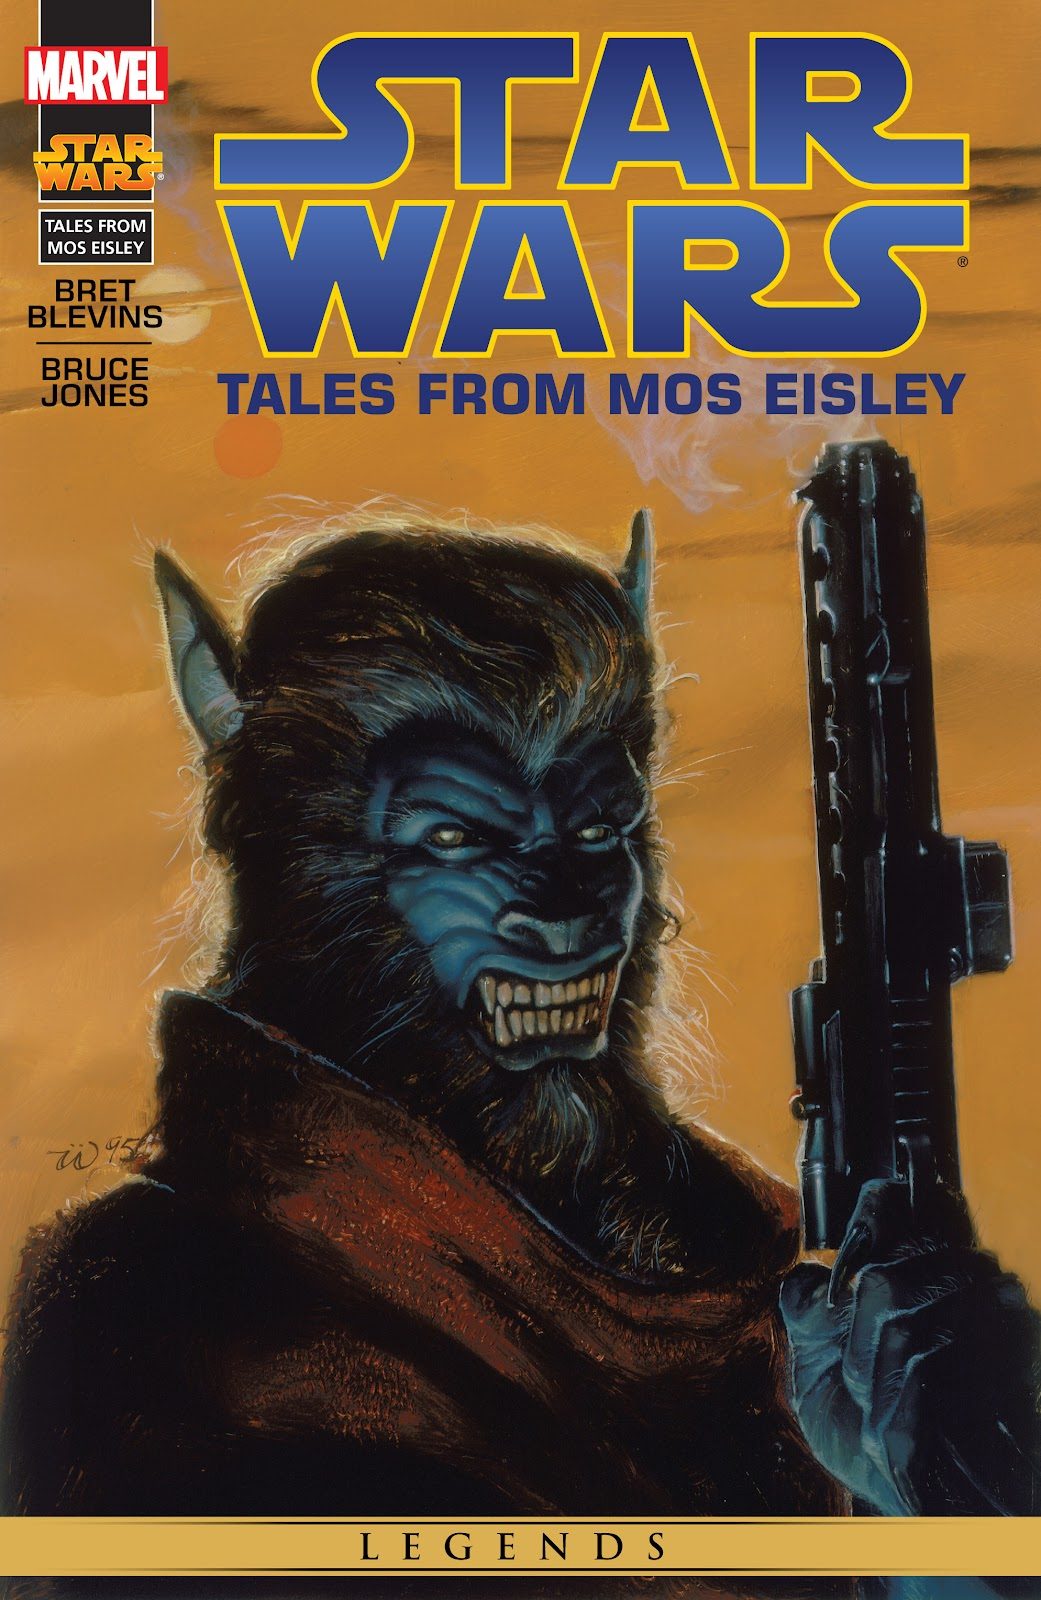 Read online Star Wars: Tales from Mos Eisley comic -  Issue # Full - 1